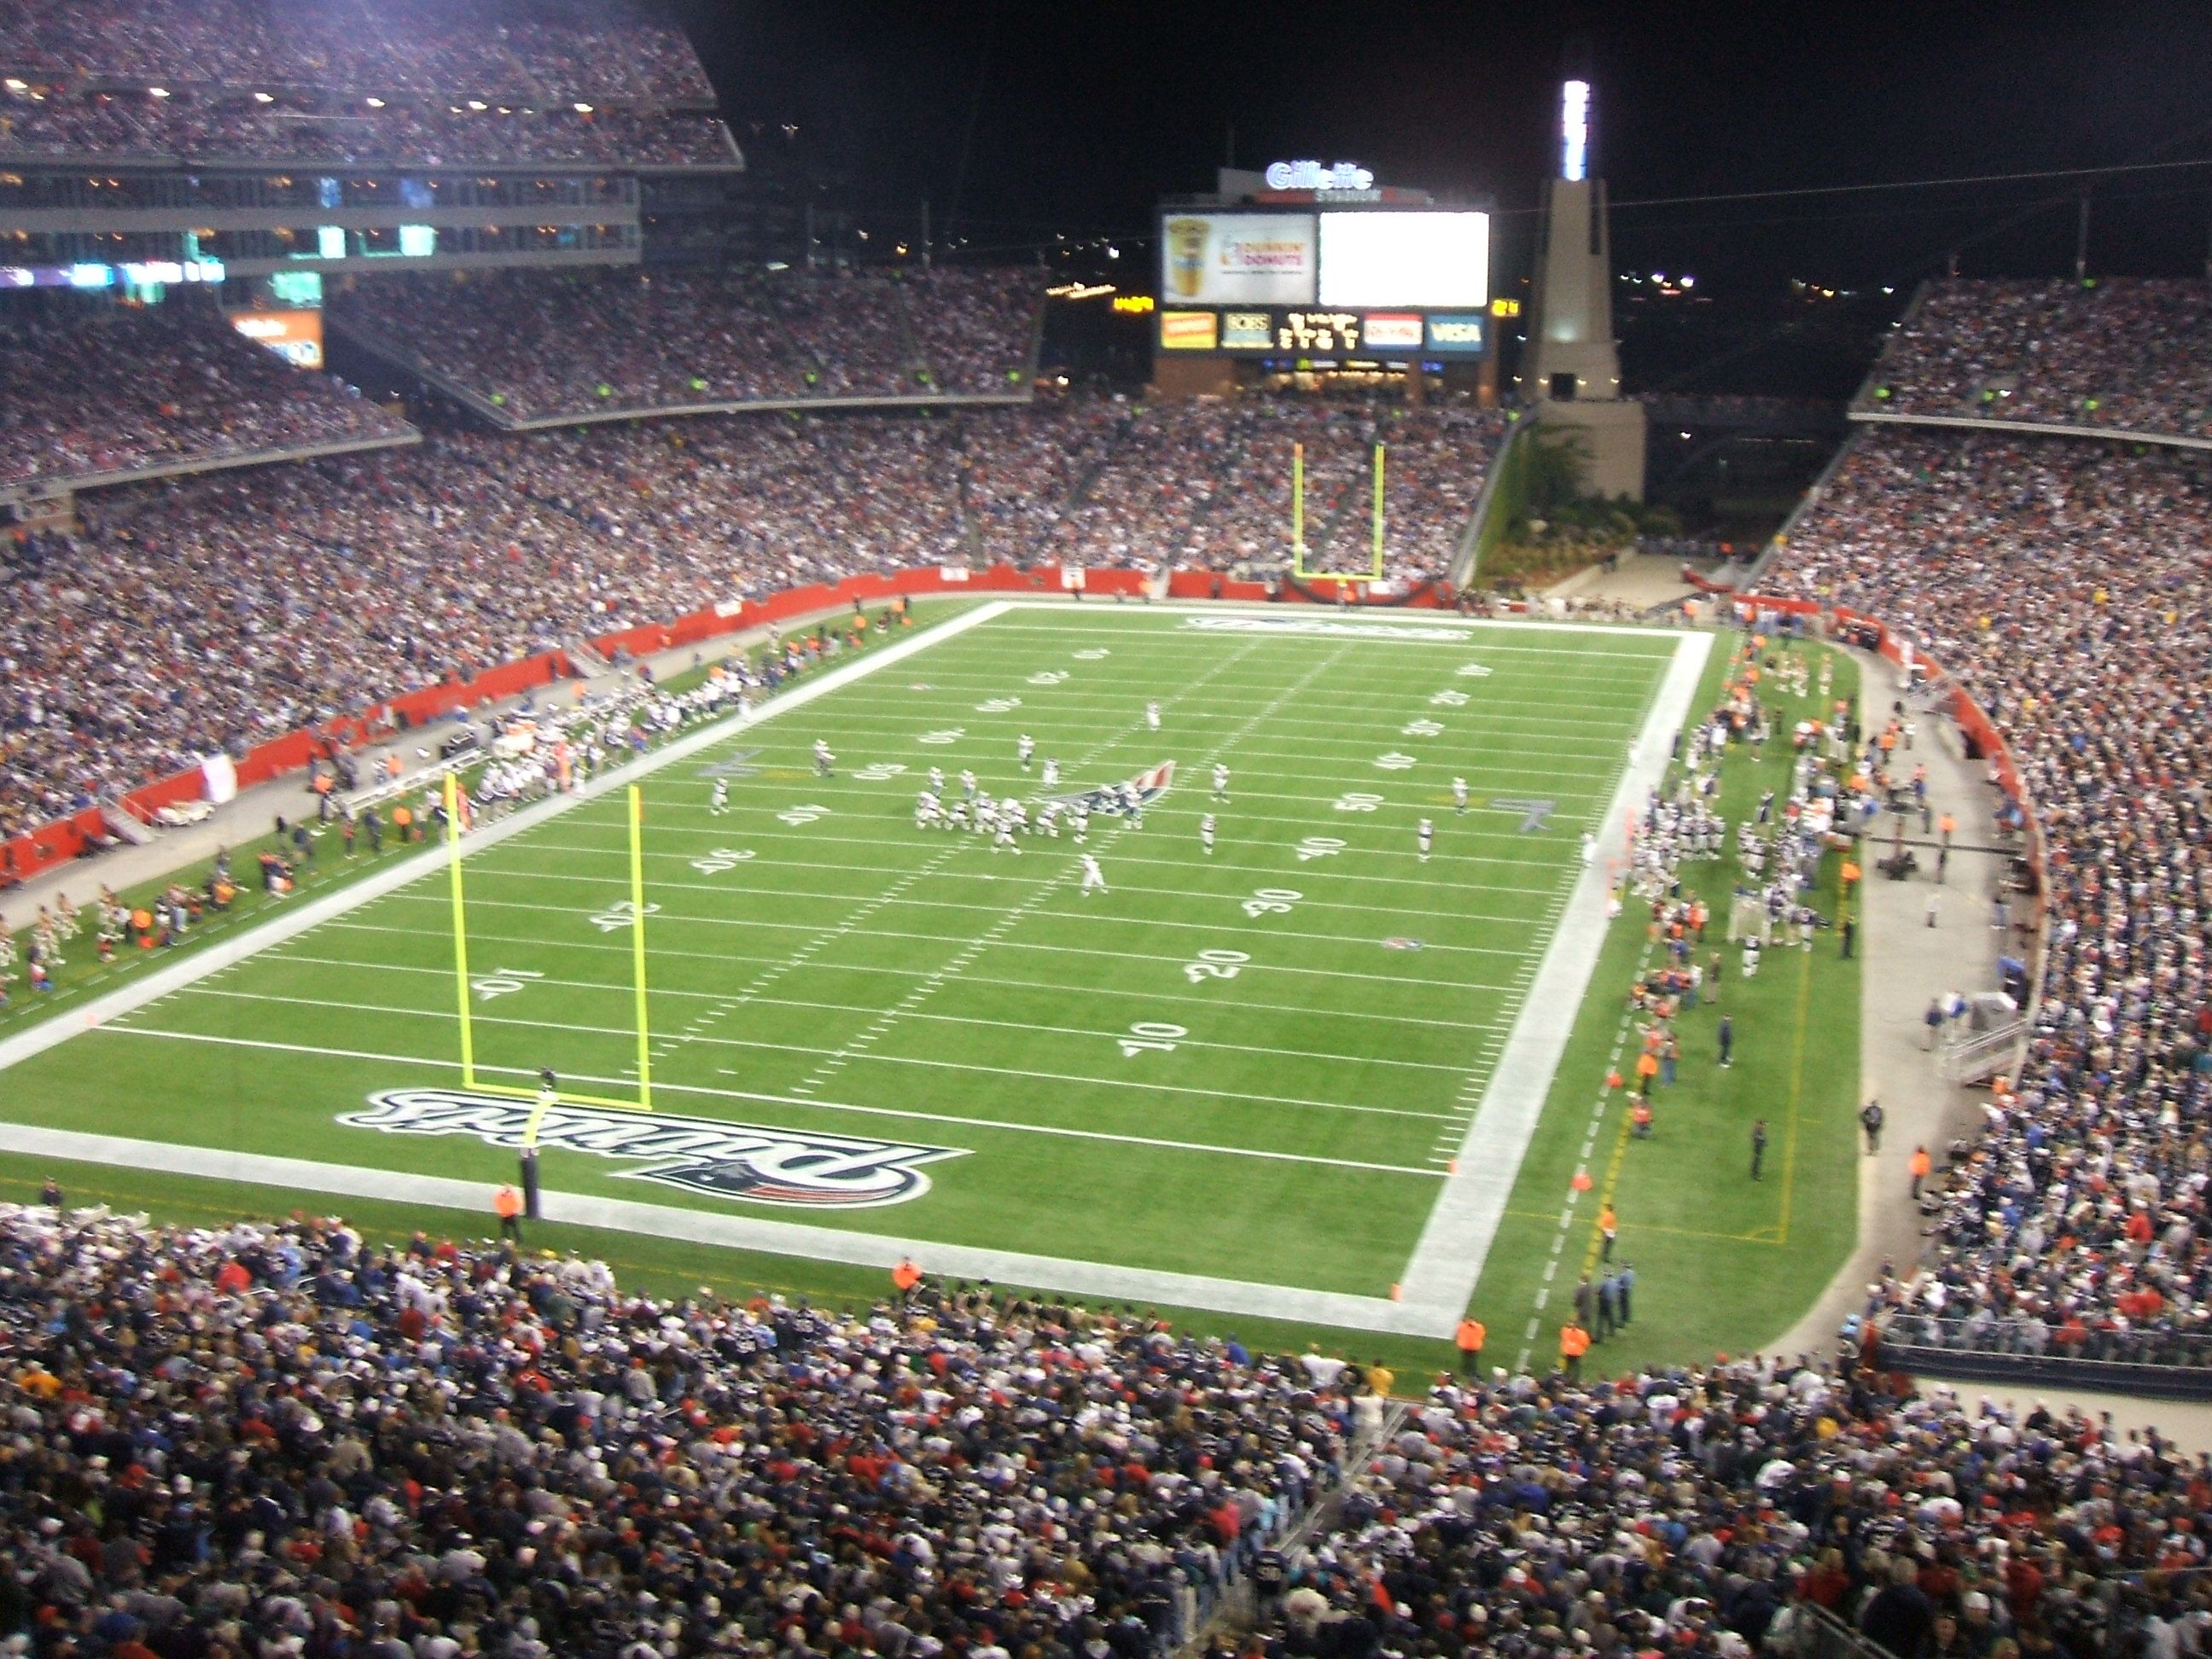 New England Patriots Game Home My New England Patriots Tickets Gillette Stadium Patriots Stadium